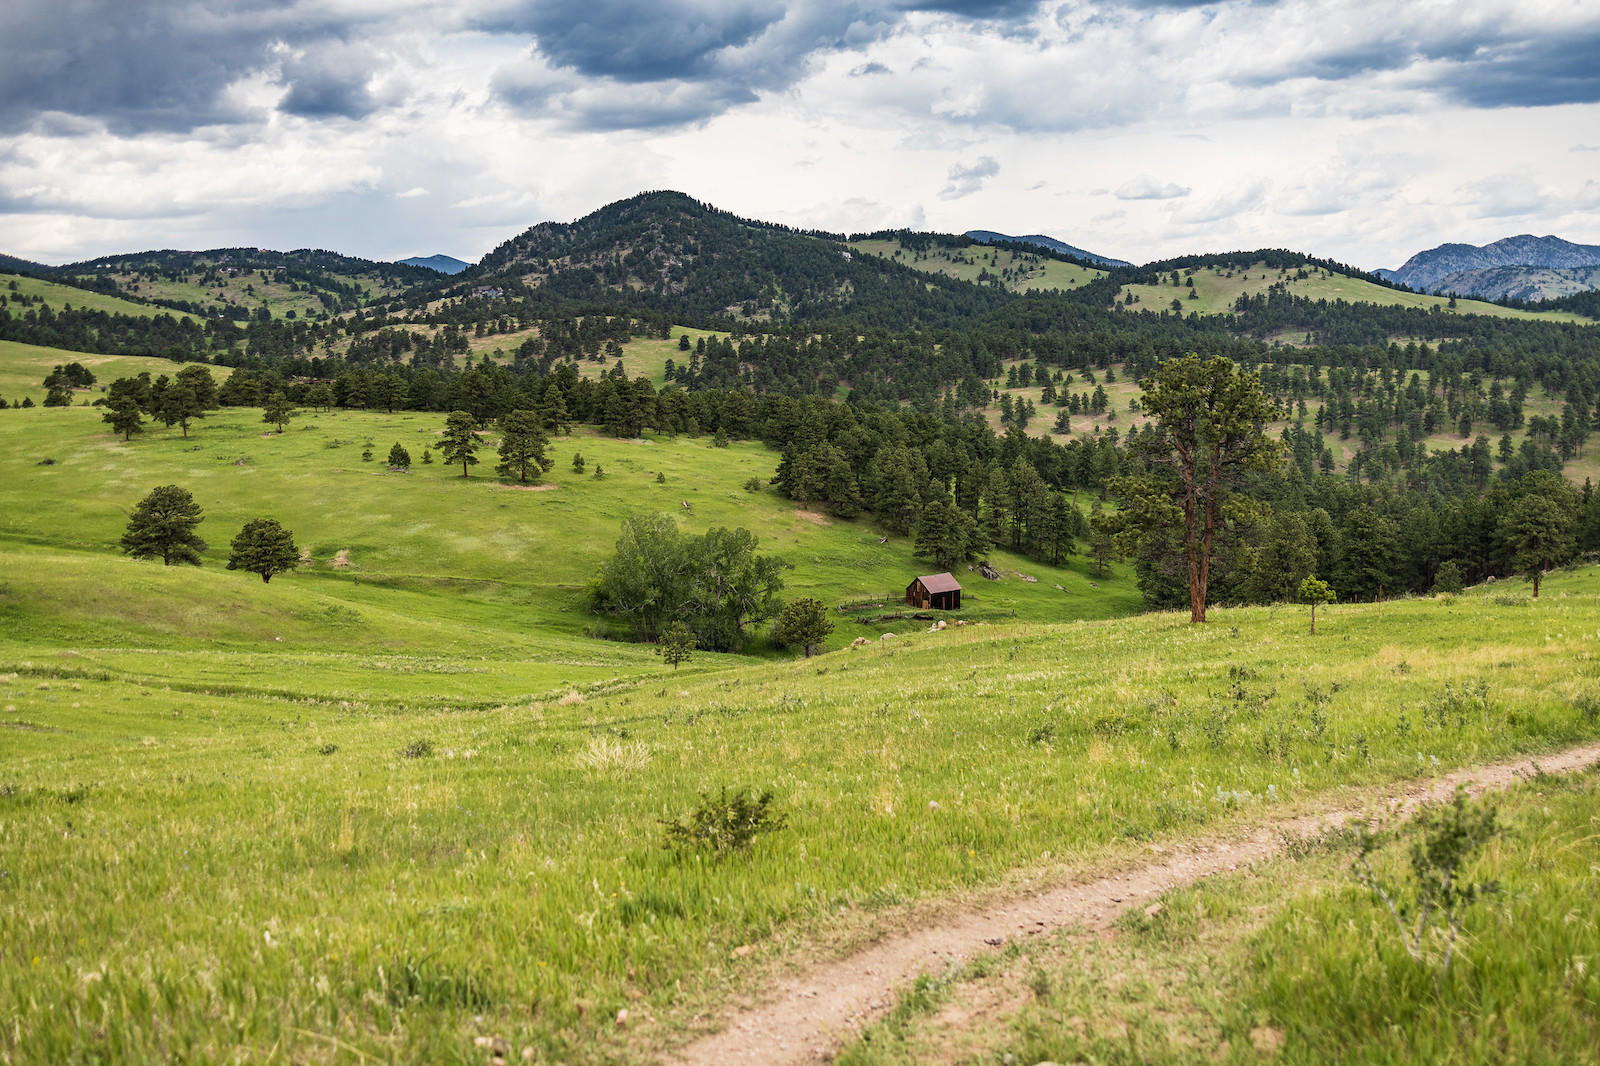 Image of White Ranch Park in Golden, Colorado